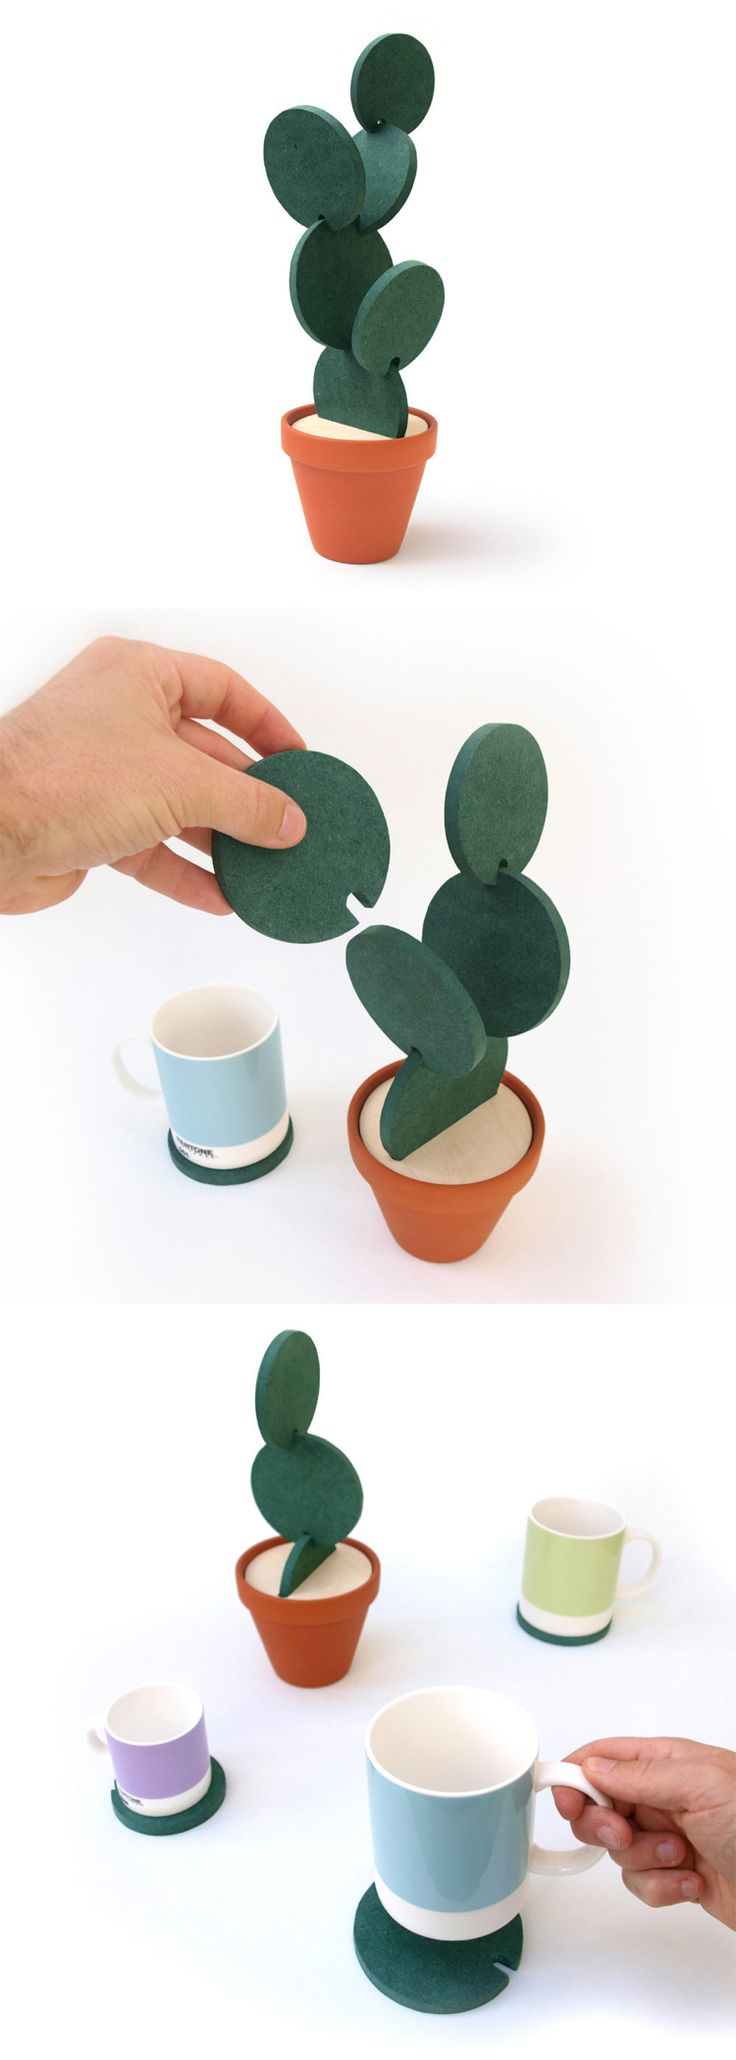 Cacti Coasters by designer Clive Roddy is a clever way to store your coasters when they're not in use.